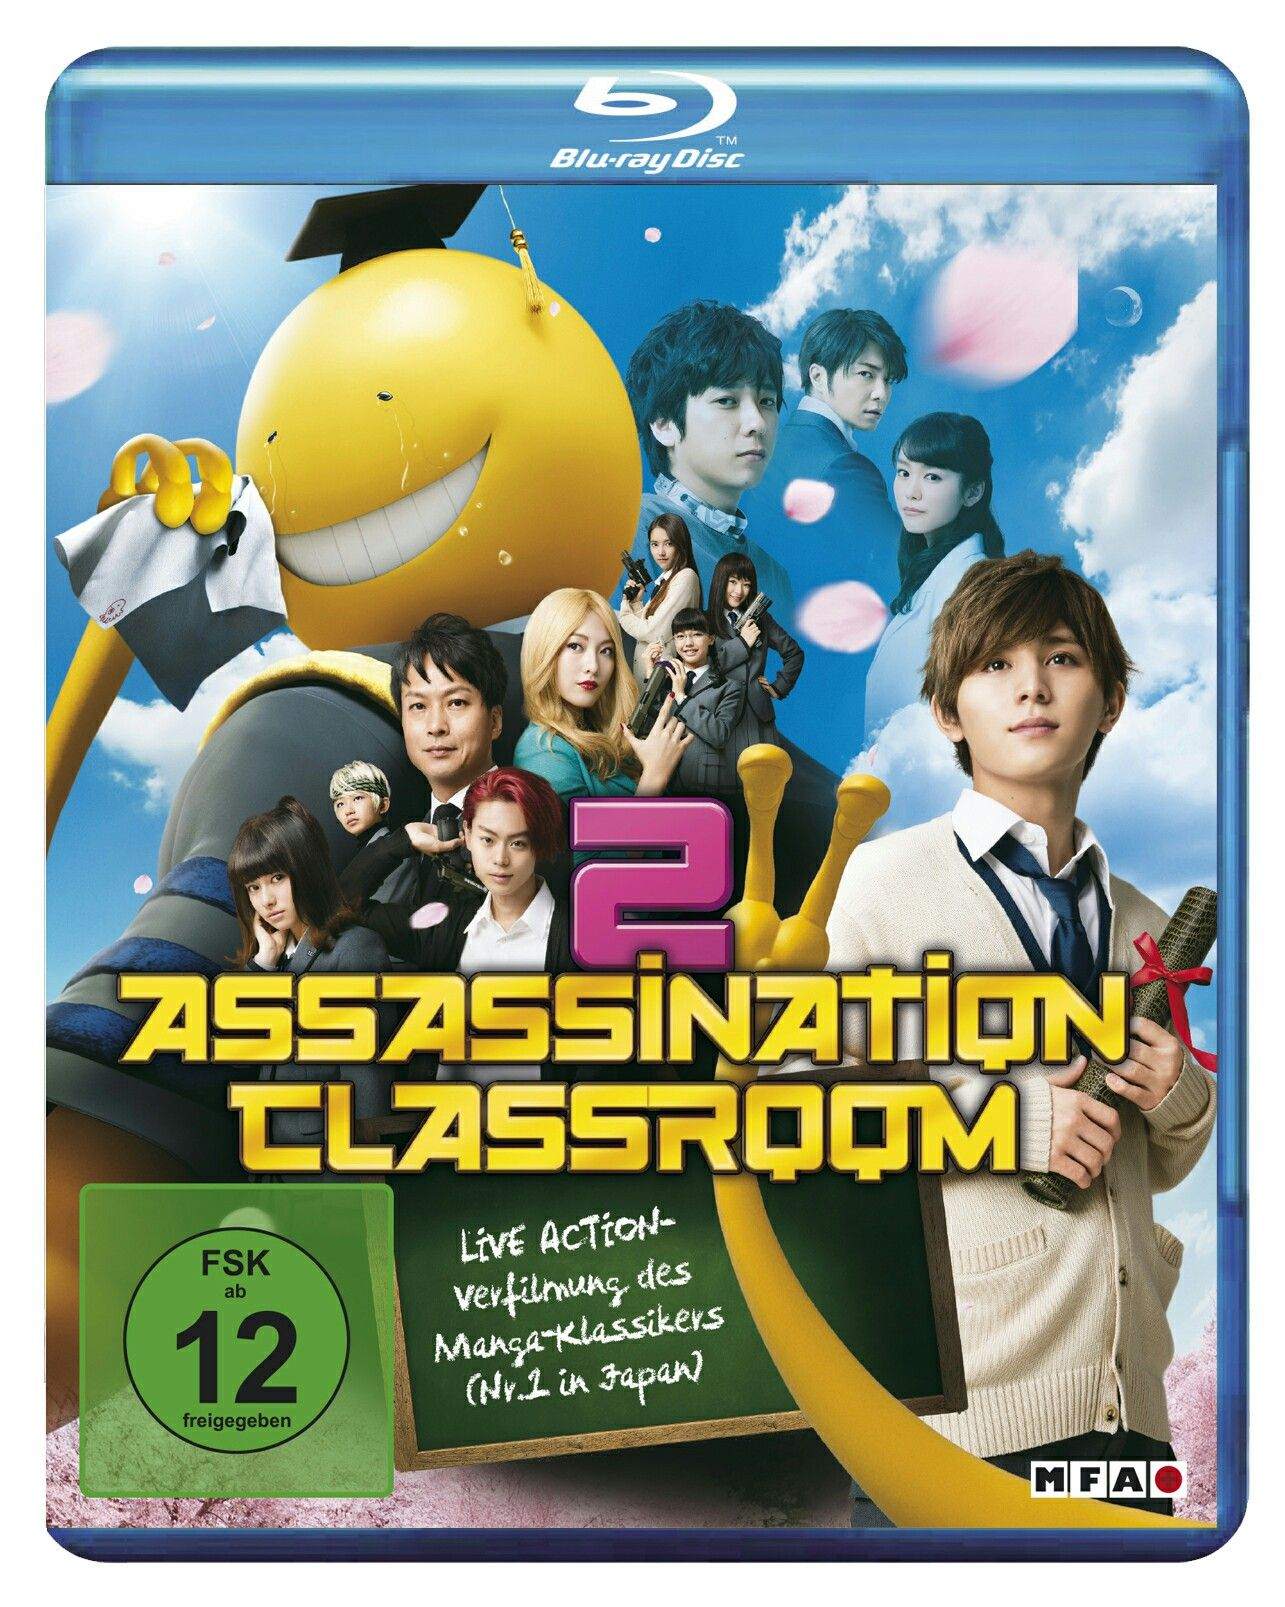 Pin by Ангелина Цай on assassination classroom story and